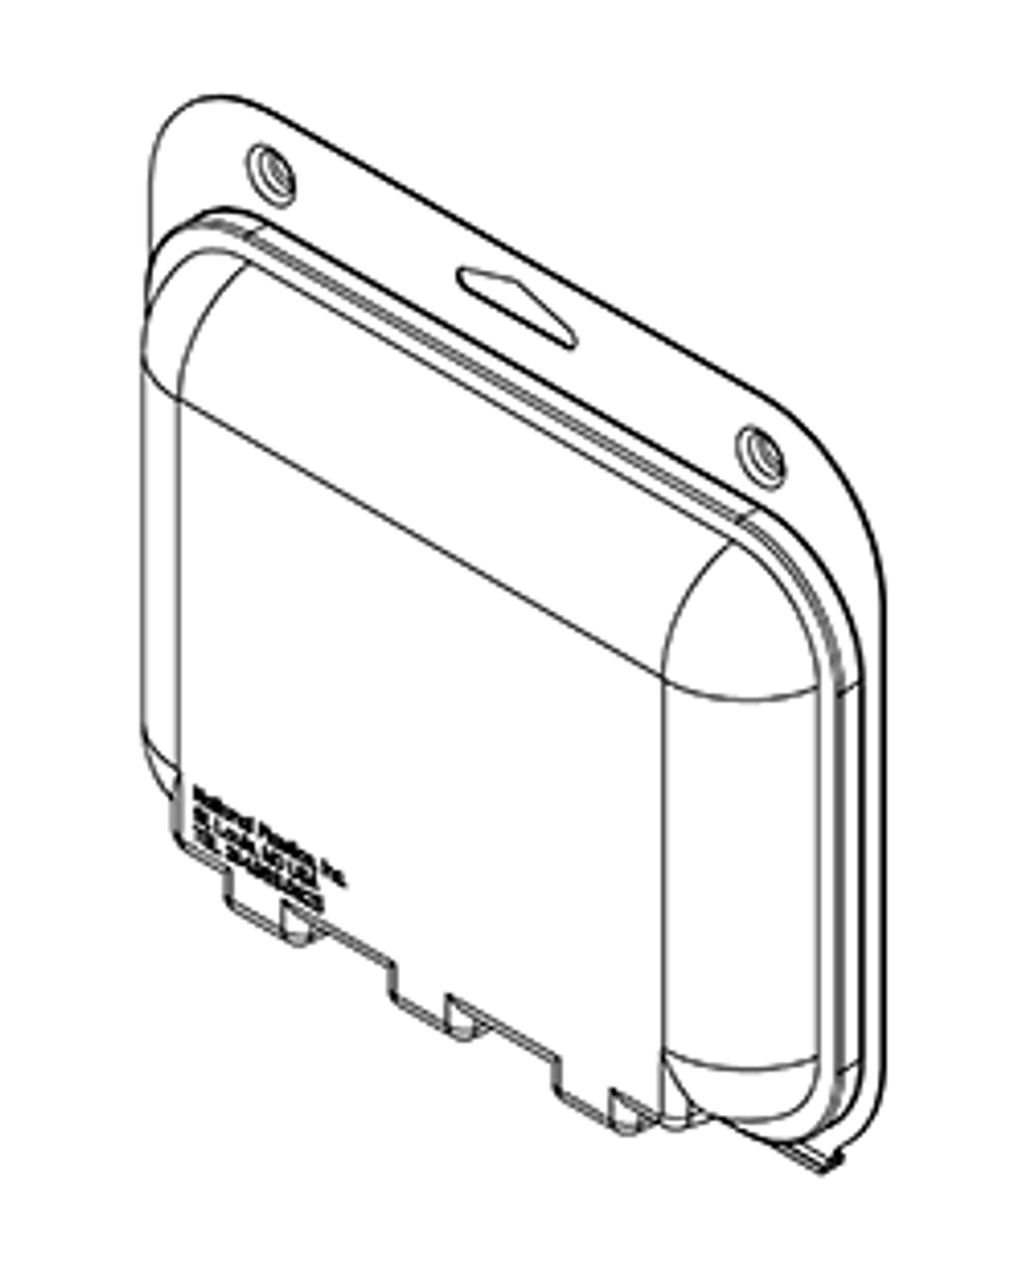 300TF - Stock Clamshell Packaging